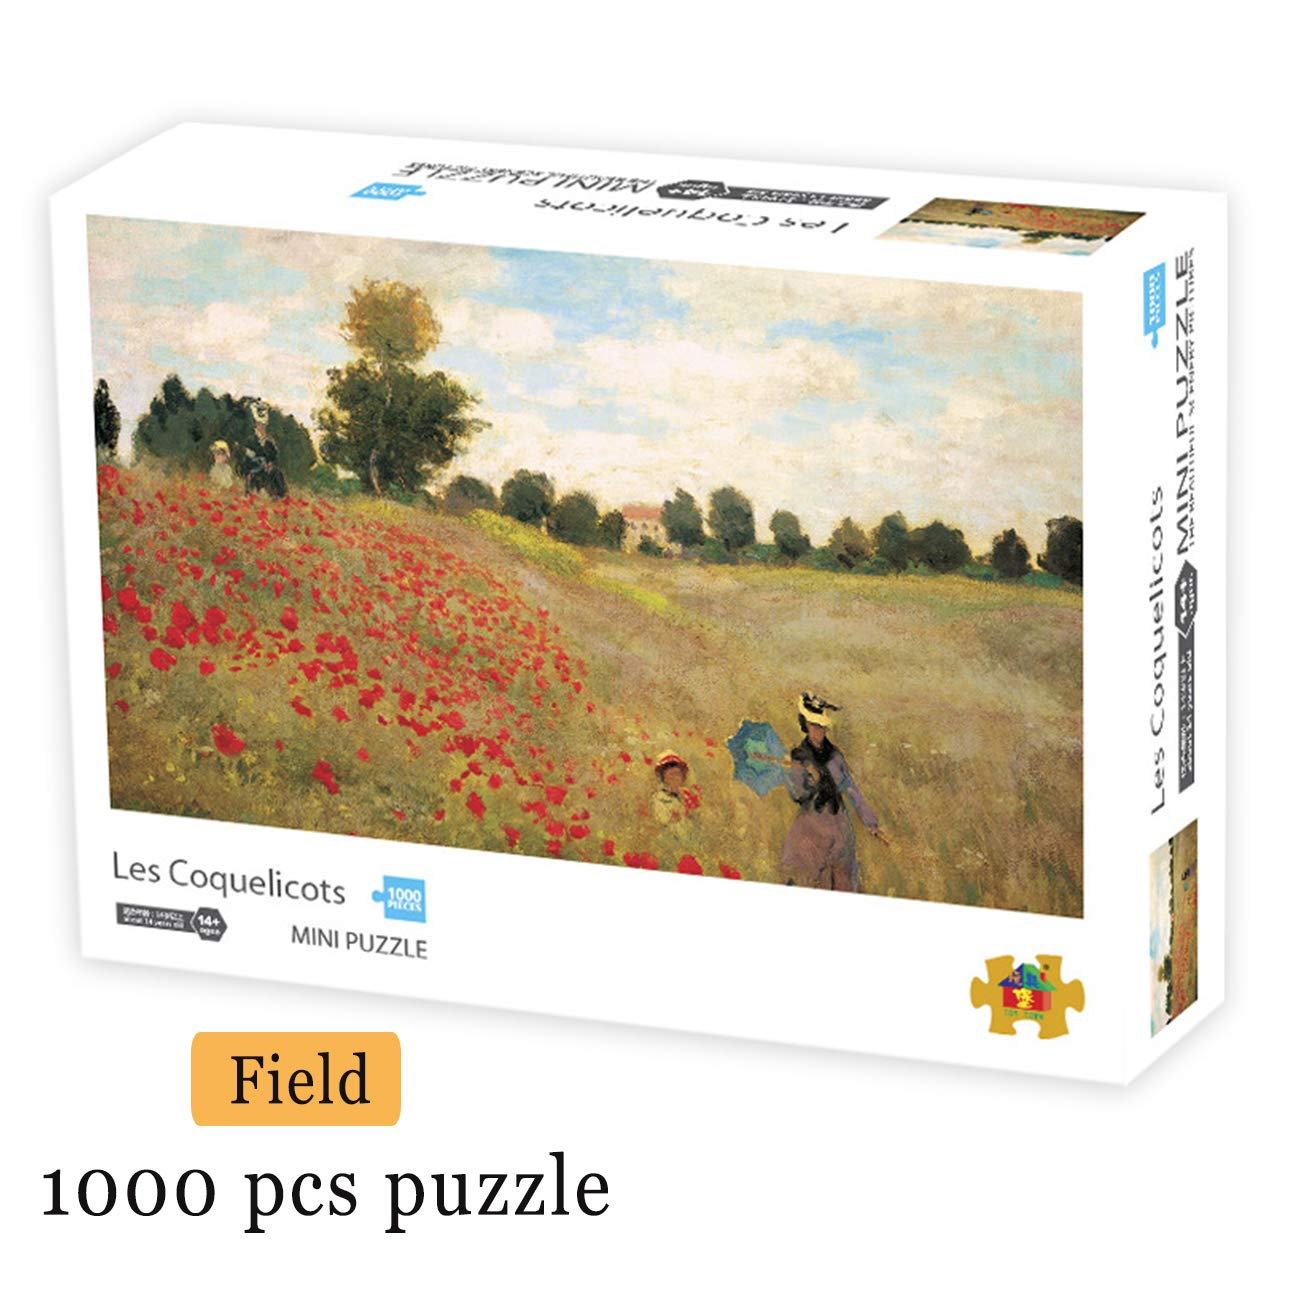 LZZTU Jigsaw Puzzle for Adults, 1000 Piece Educational Intellectual Decompressing Game, Family Game Time DIY Home Decor Wall Decor Puzzle 16.5x11.7 Inch, Field